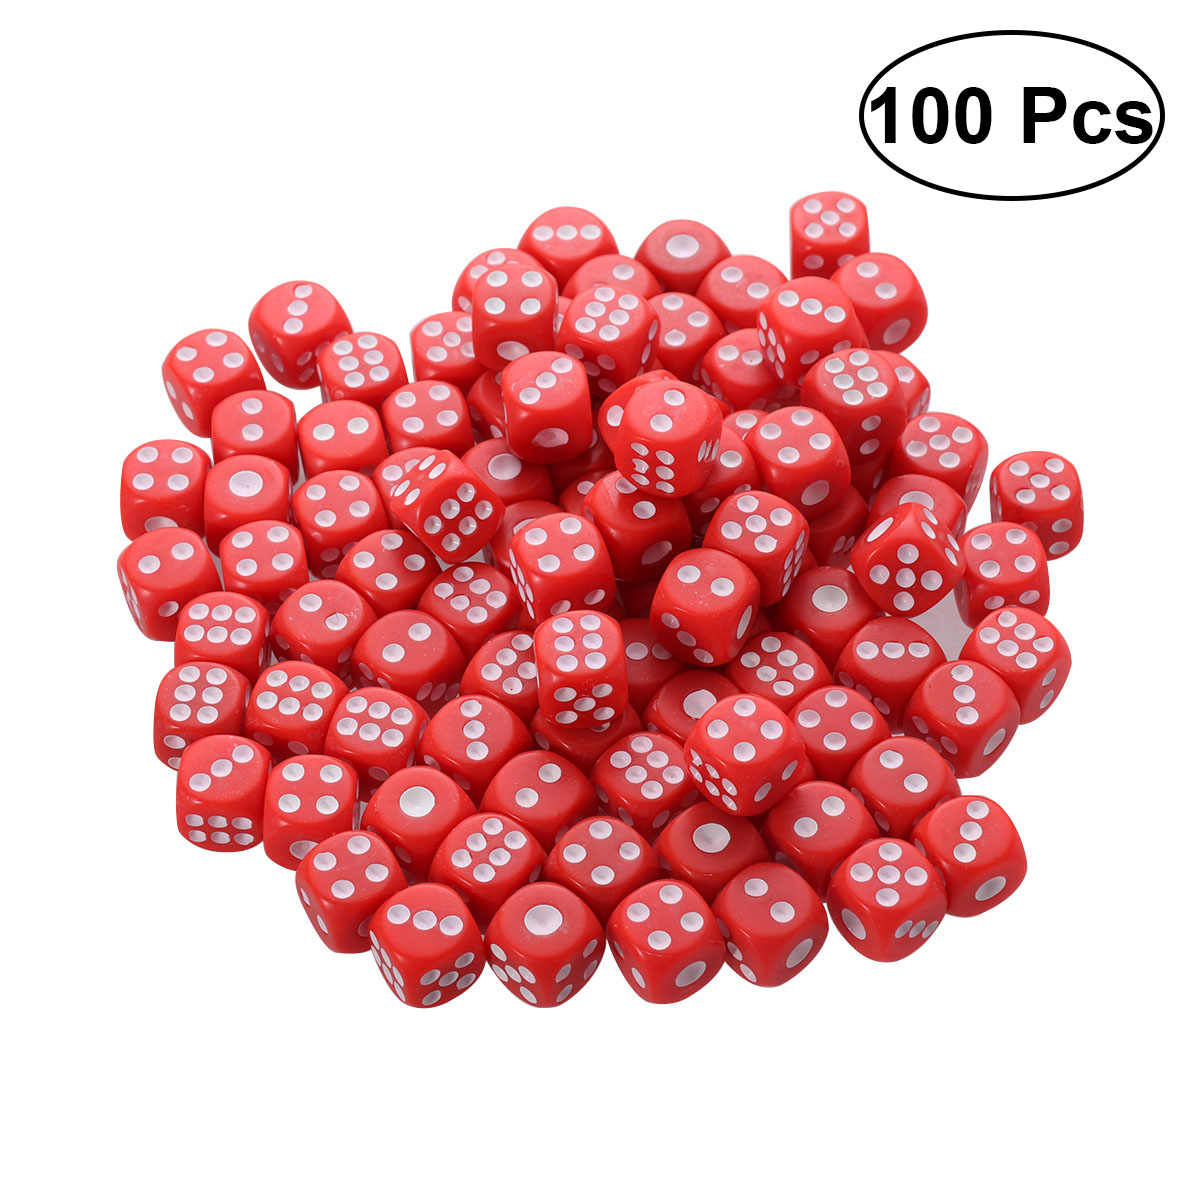 100 PCS Plastic Dices 6 Side Colored Dices for KTV Party Bar Gaming